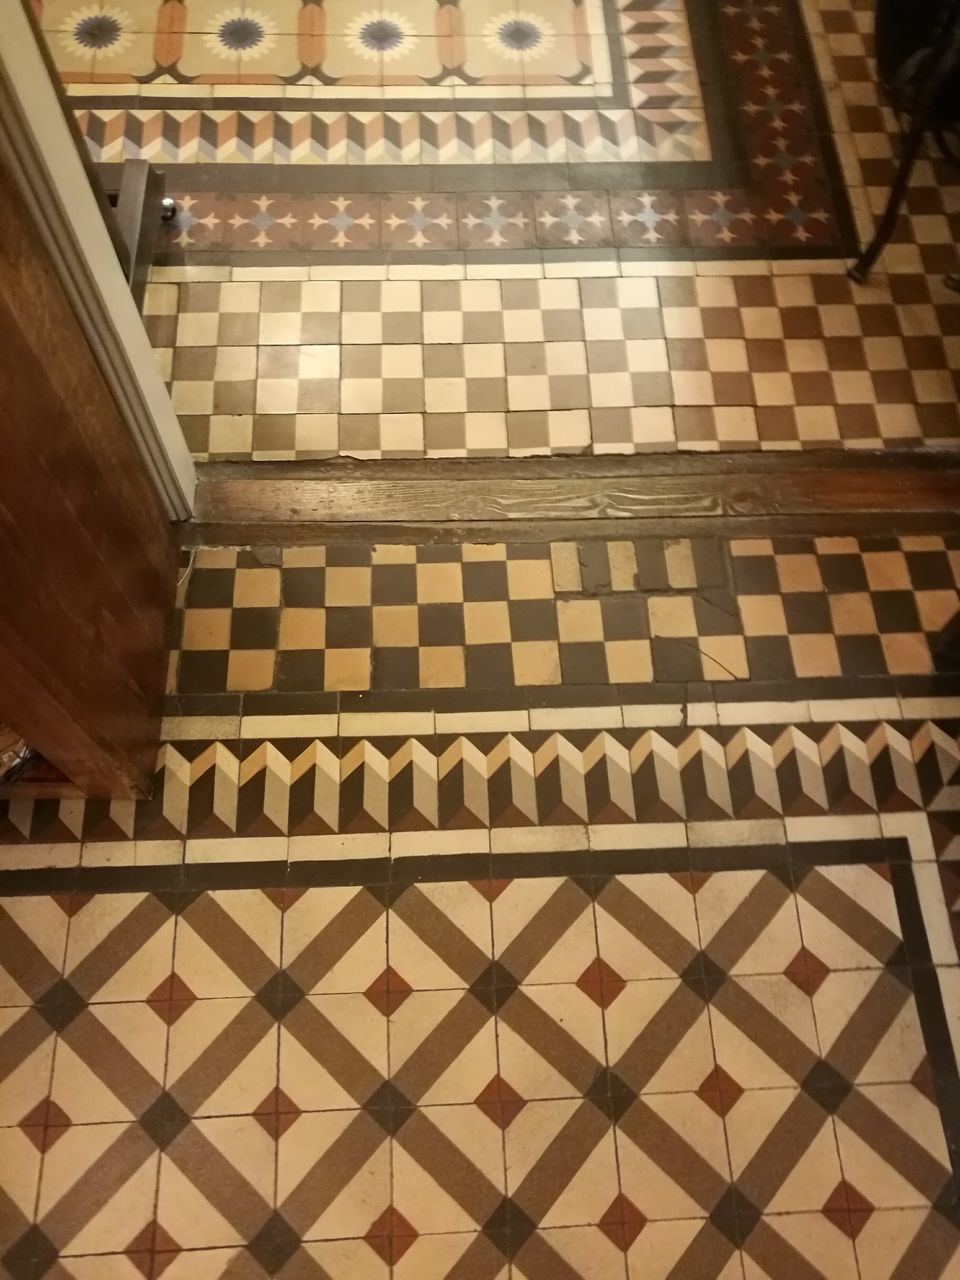 indoors, pattern, high angle view, checked pattern, no people, tile, chess board, chess, day, chess piece, close-up